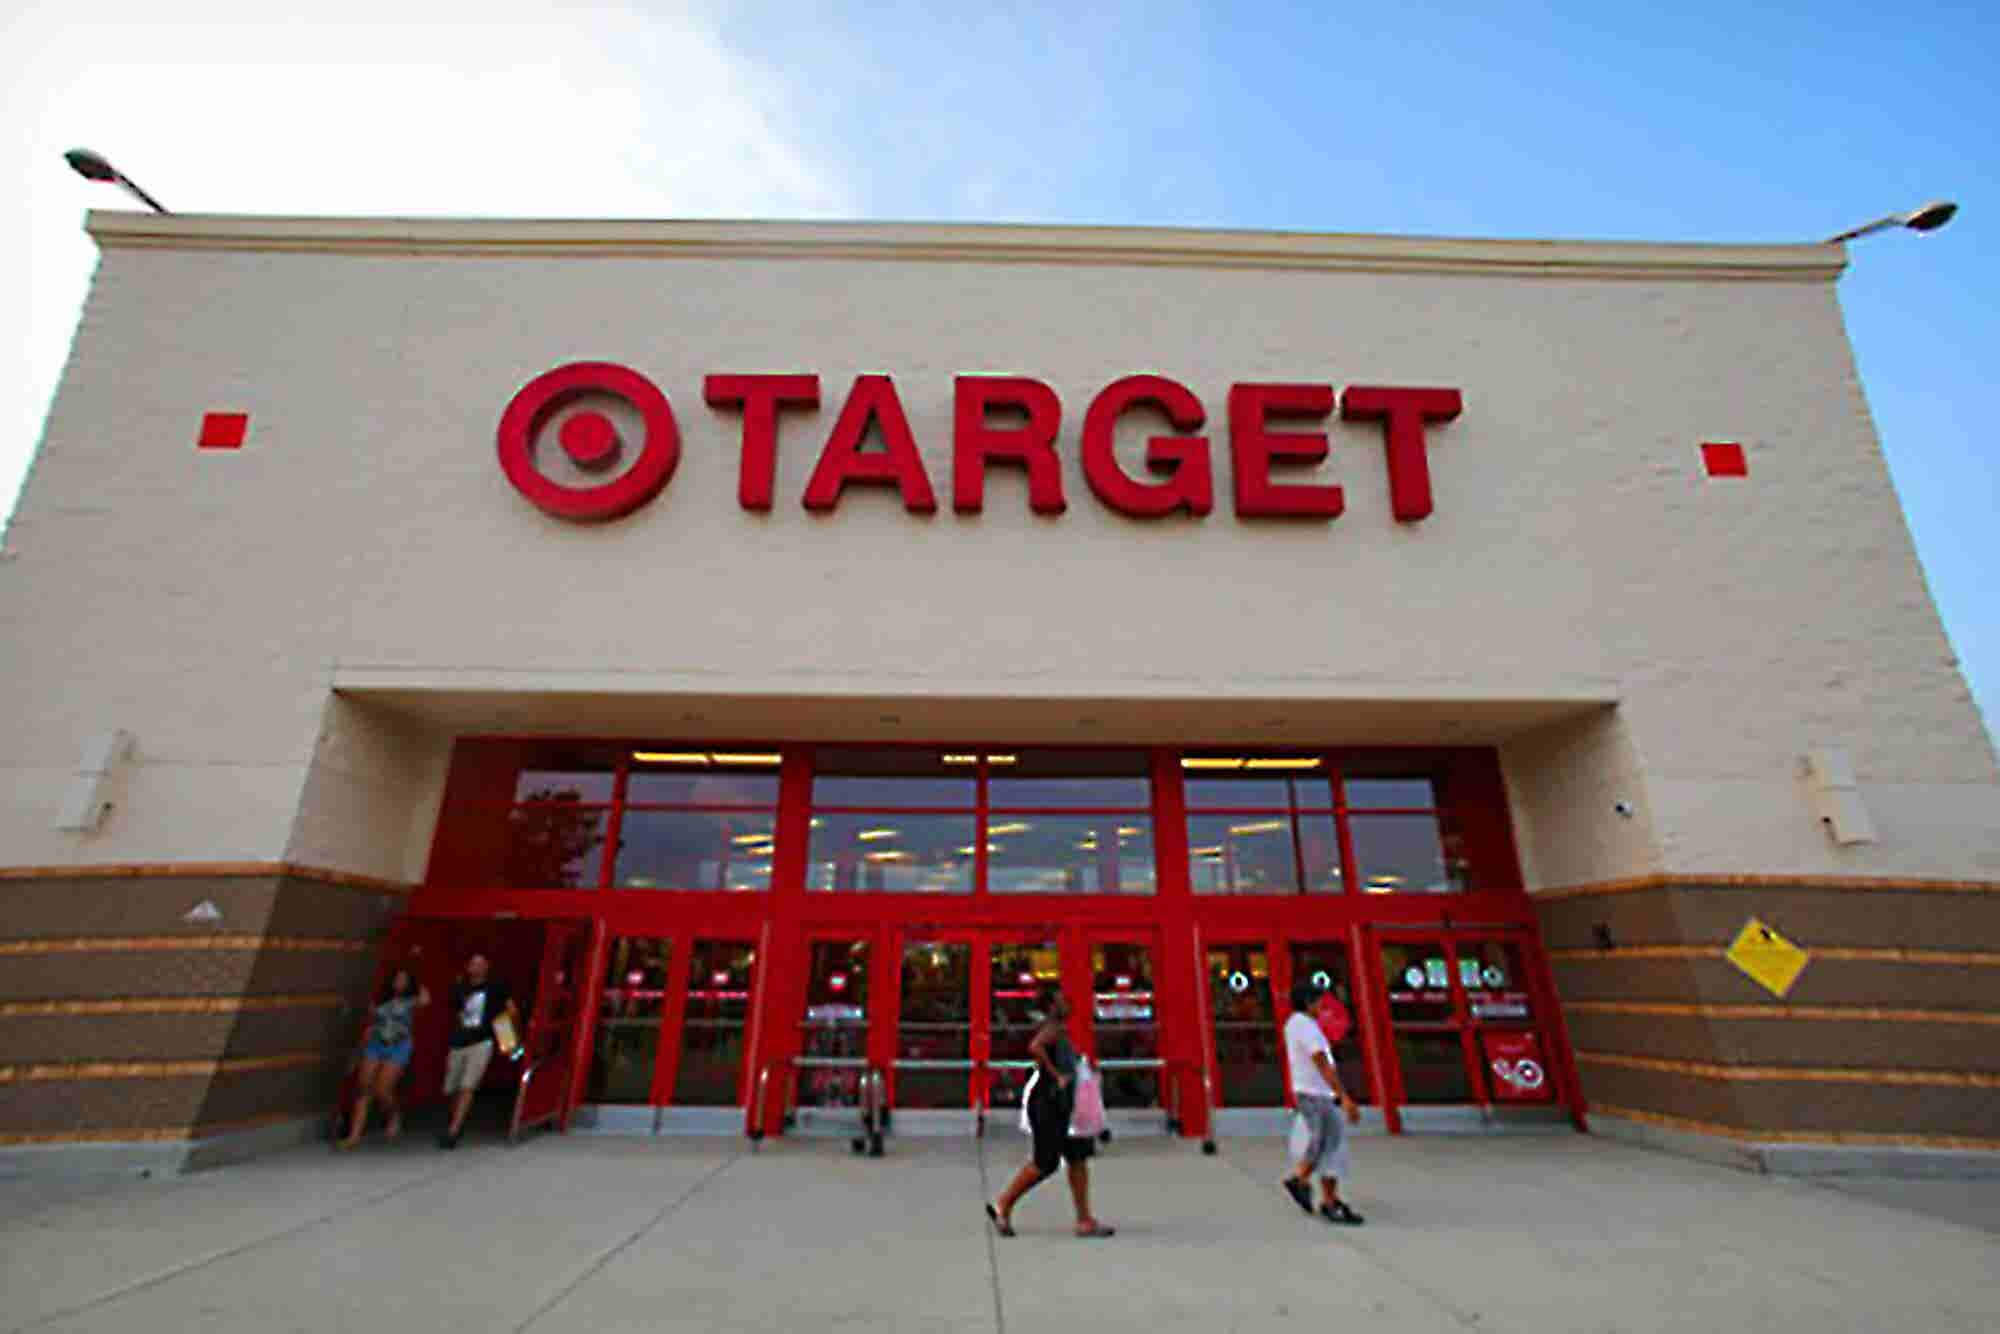 Target vs. Facebook: 2 Paths to Handling Politically Charged Situation...